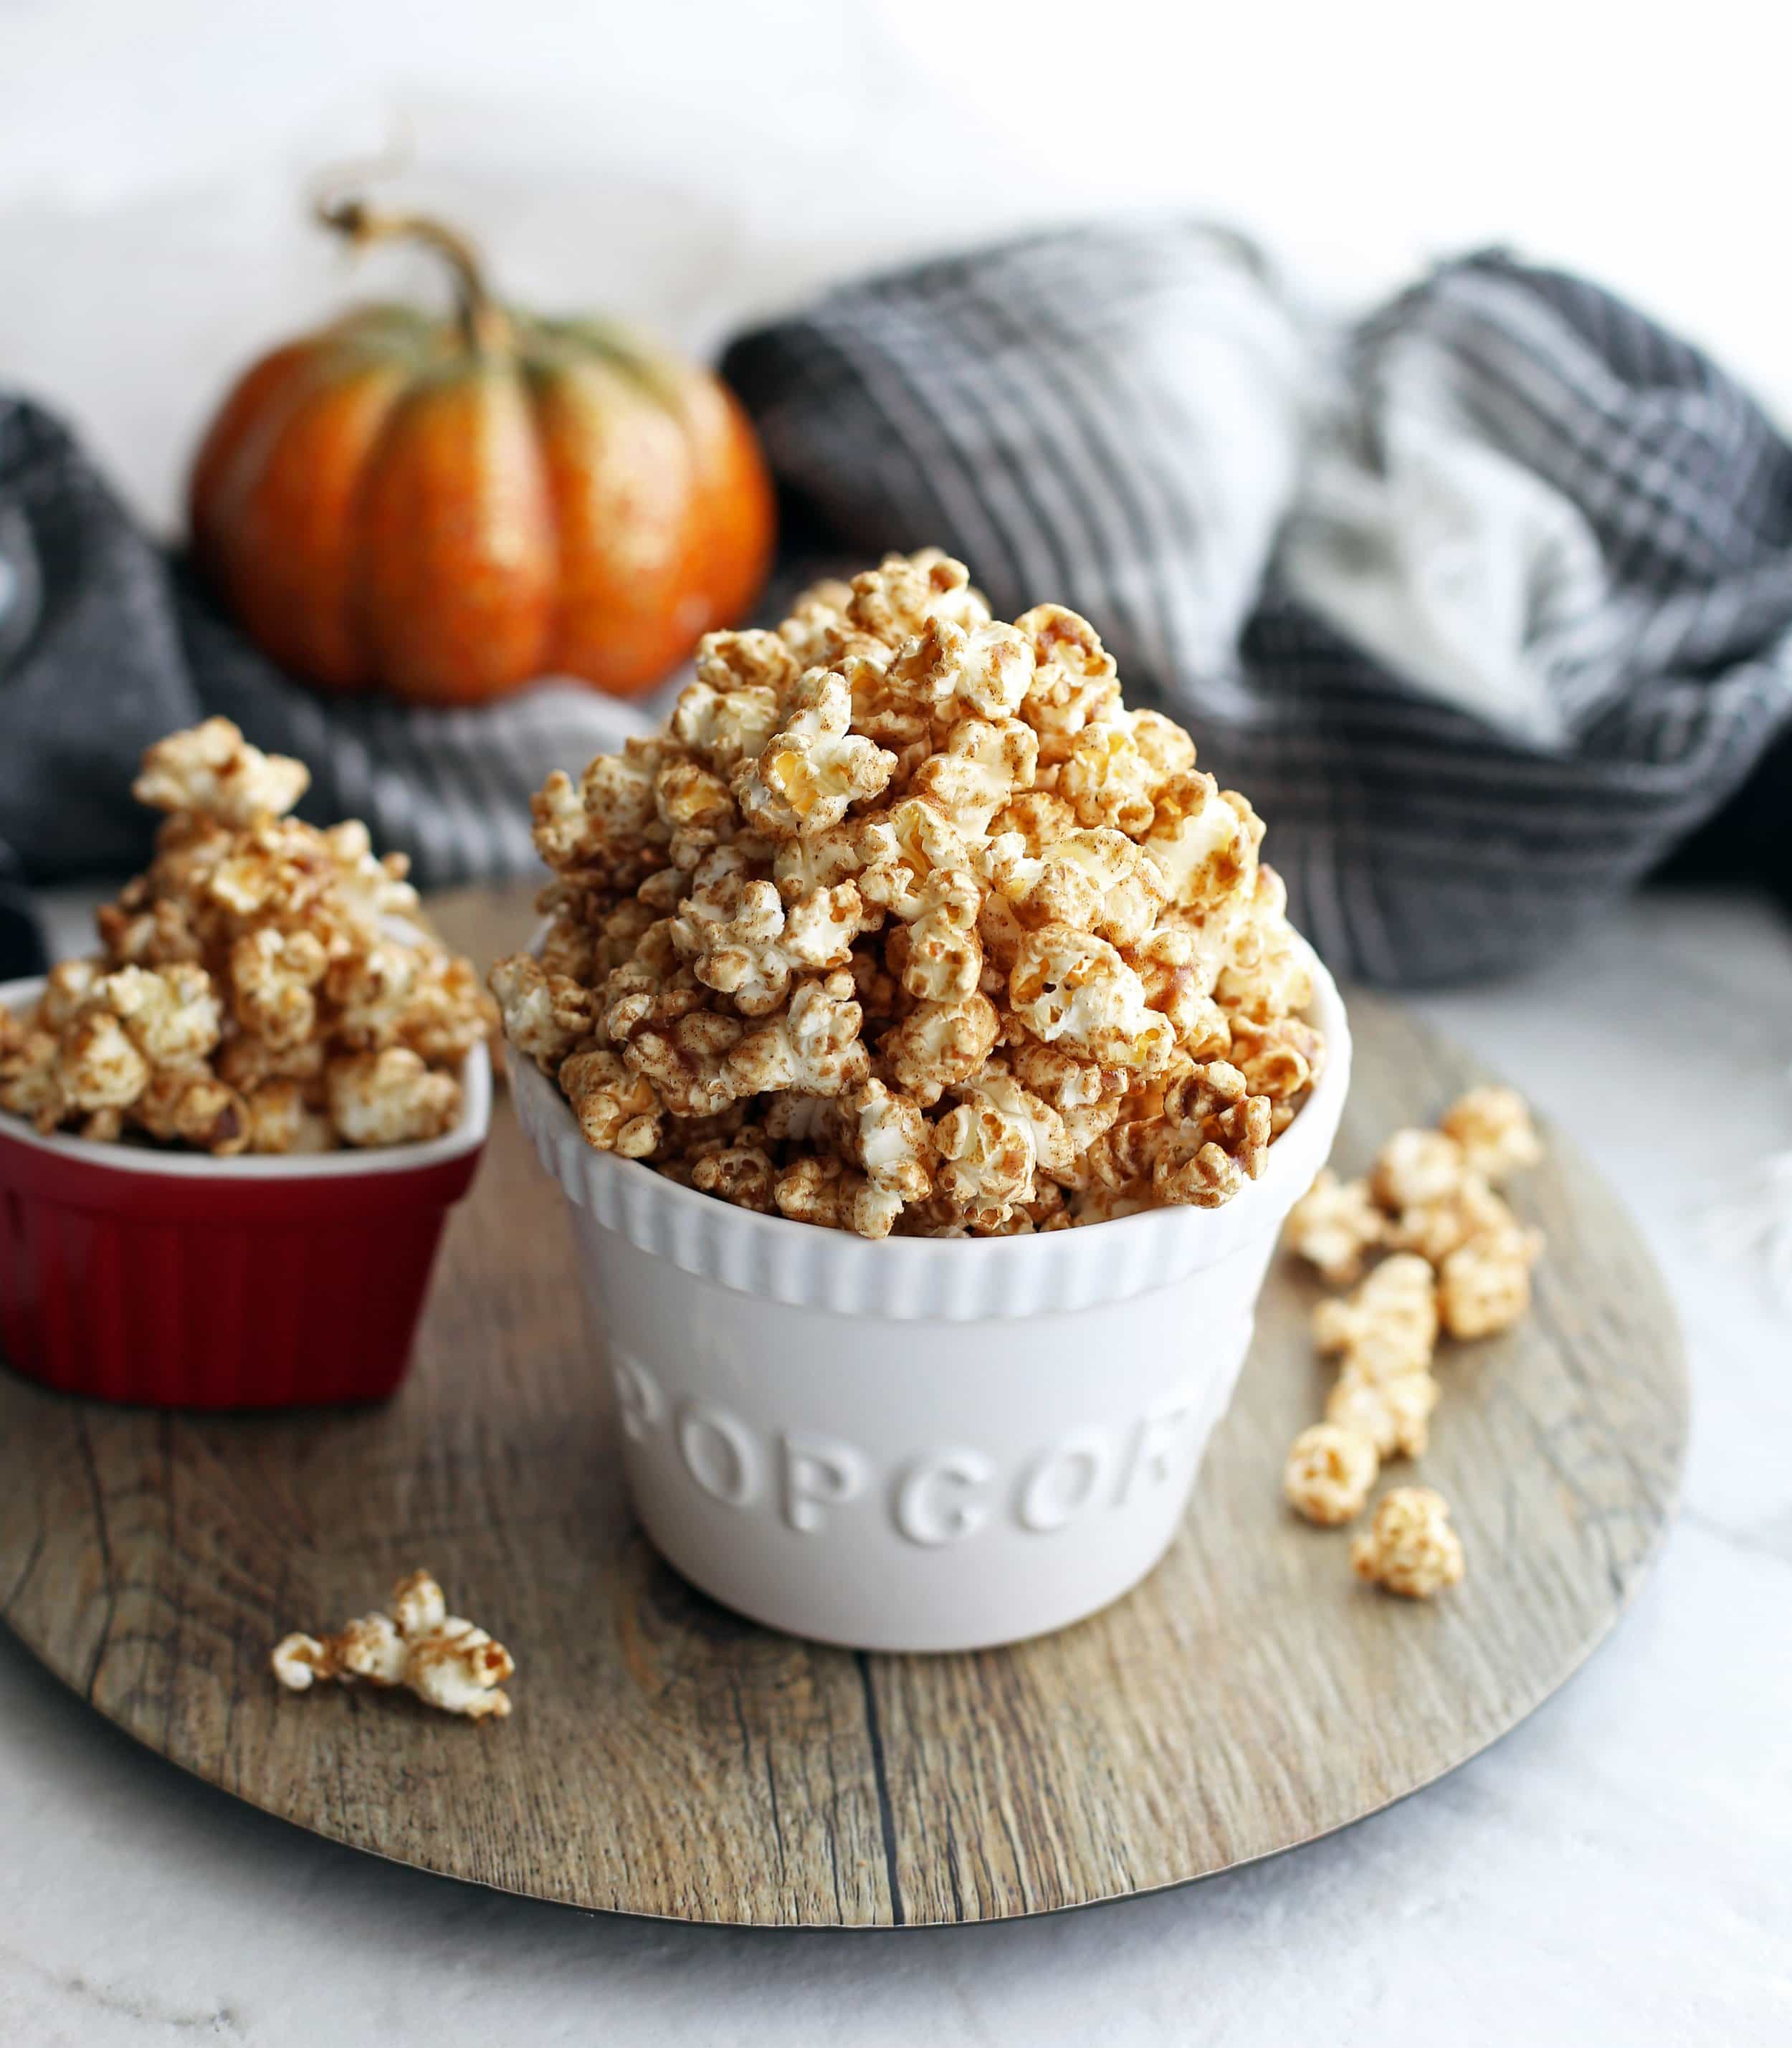 Two bowls filled with homemade pumpkin spice butterscotch popcorn on a wooden platter.